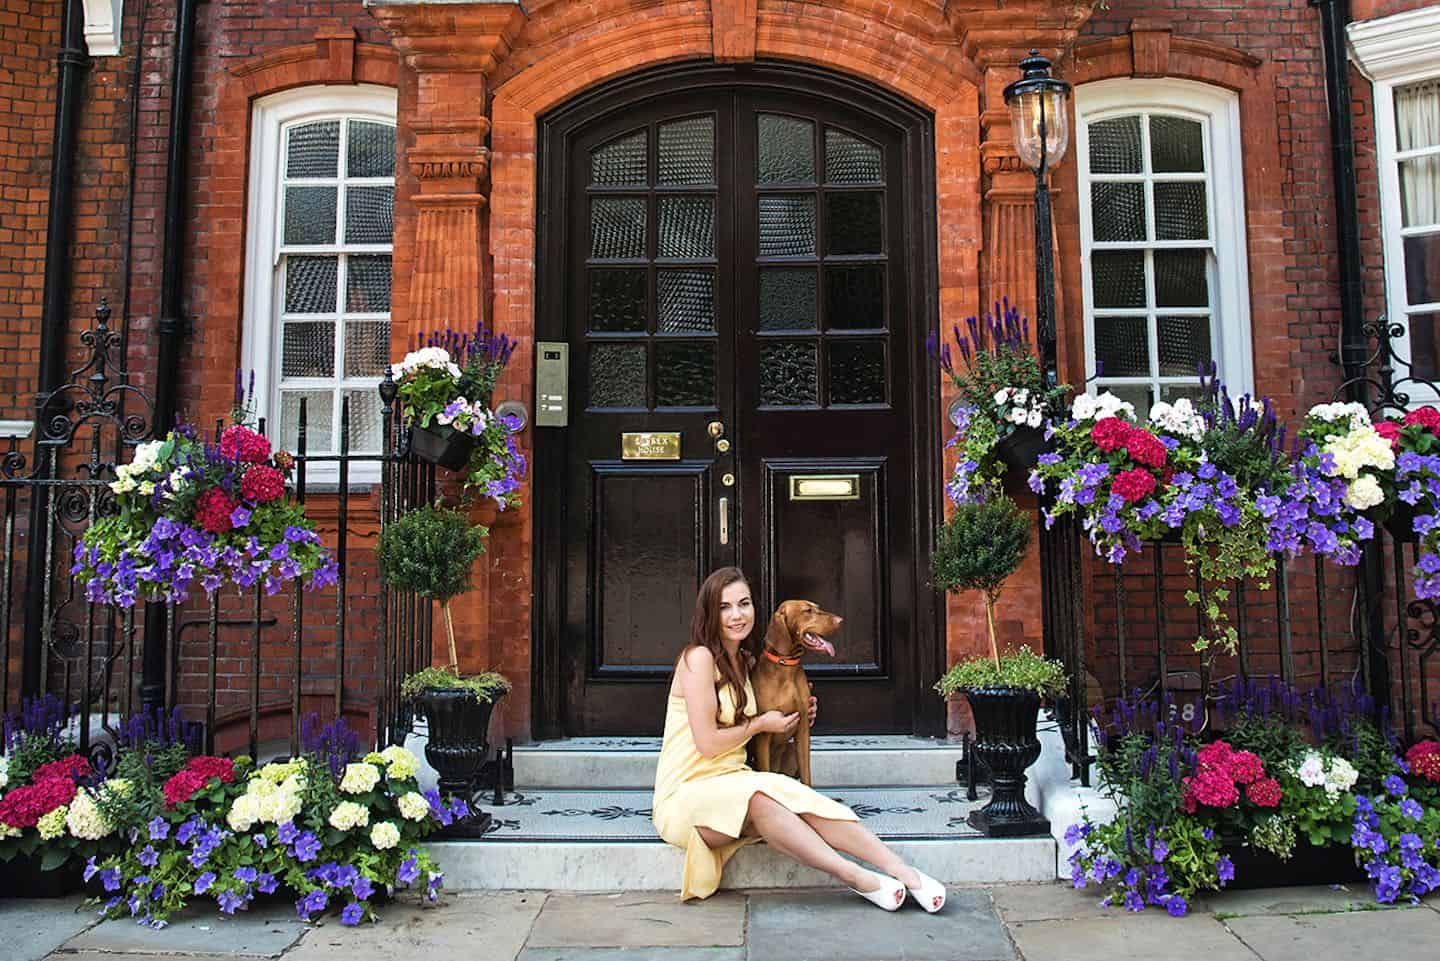 Dog Events In London This Month April 2019 - Chelsea Hounds Photo Walk